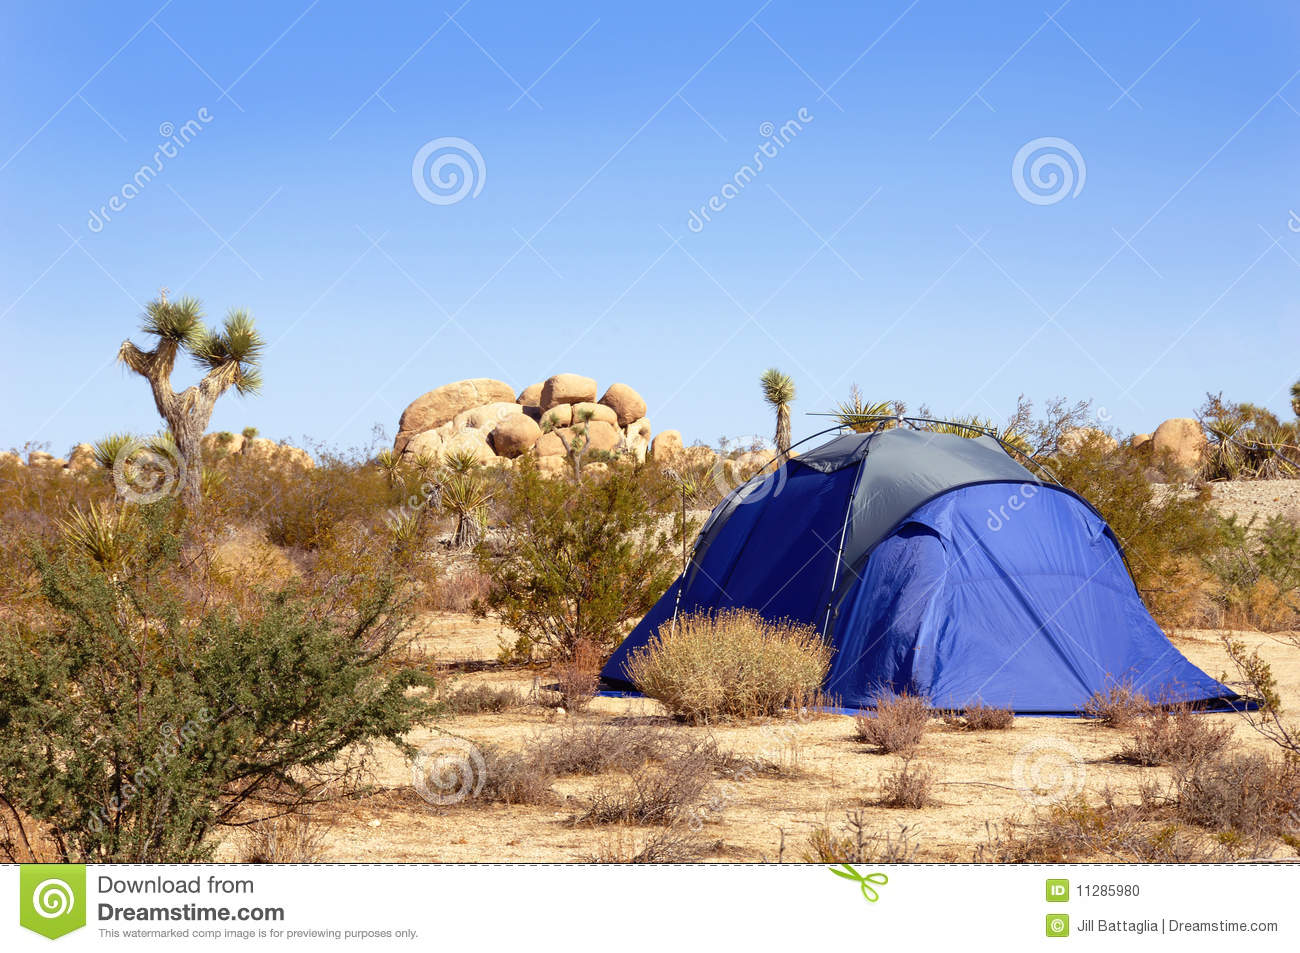 Camping Tent In The Mojave Desert Stock Photo.